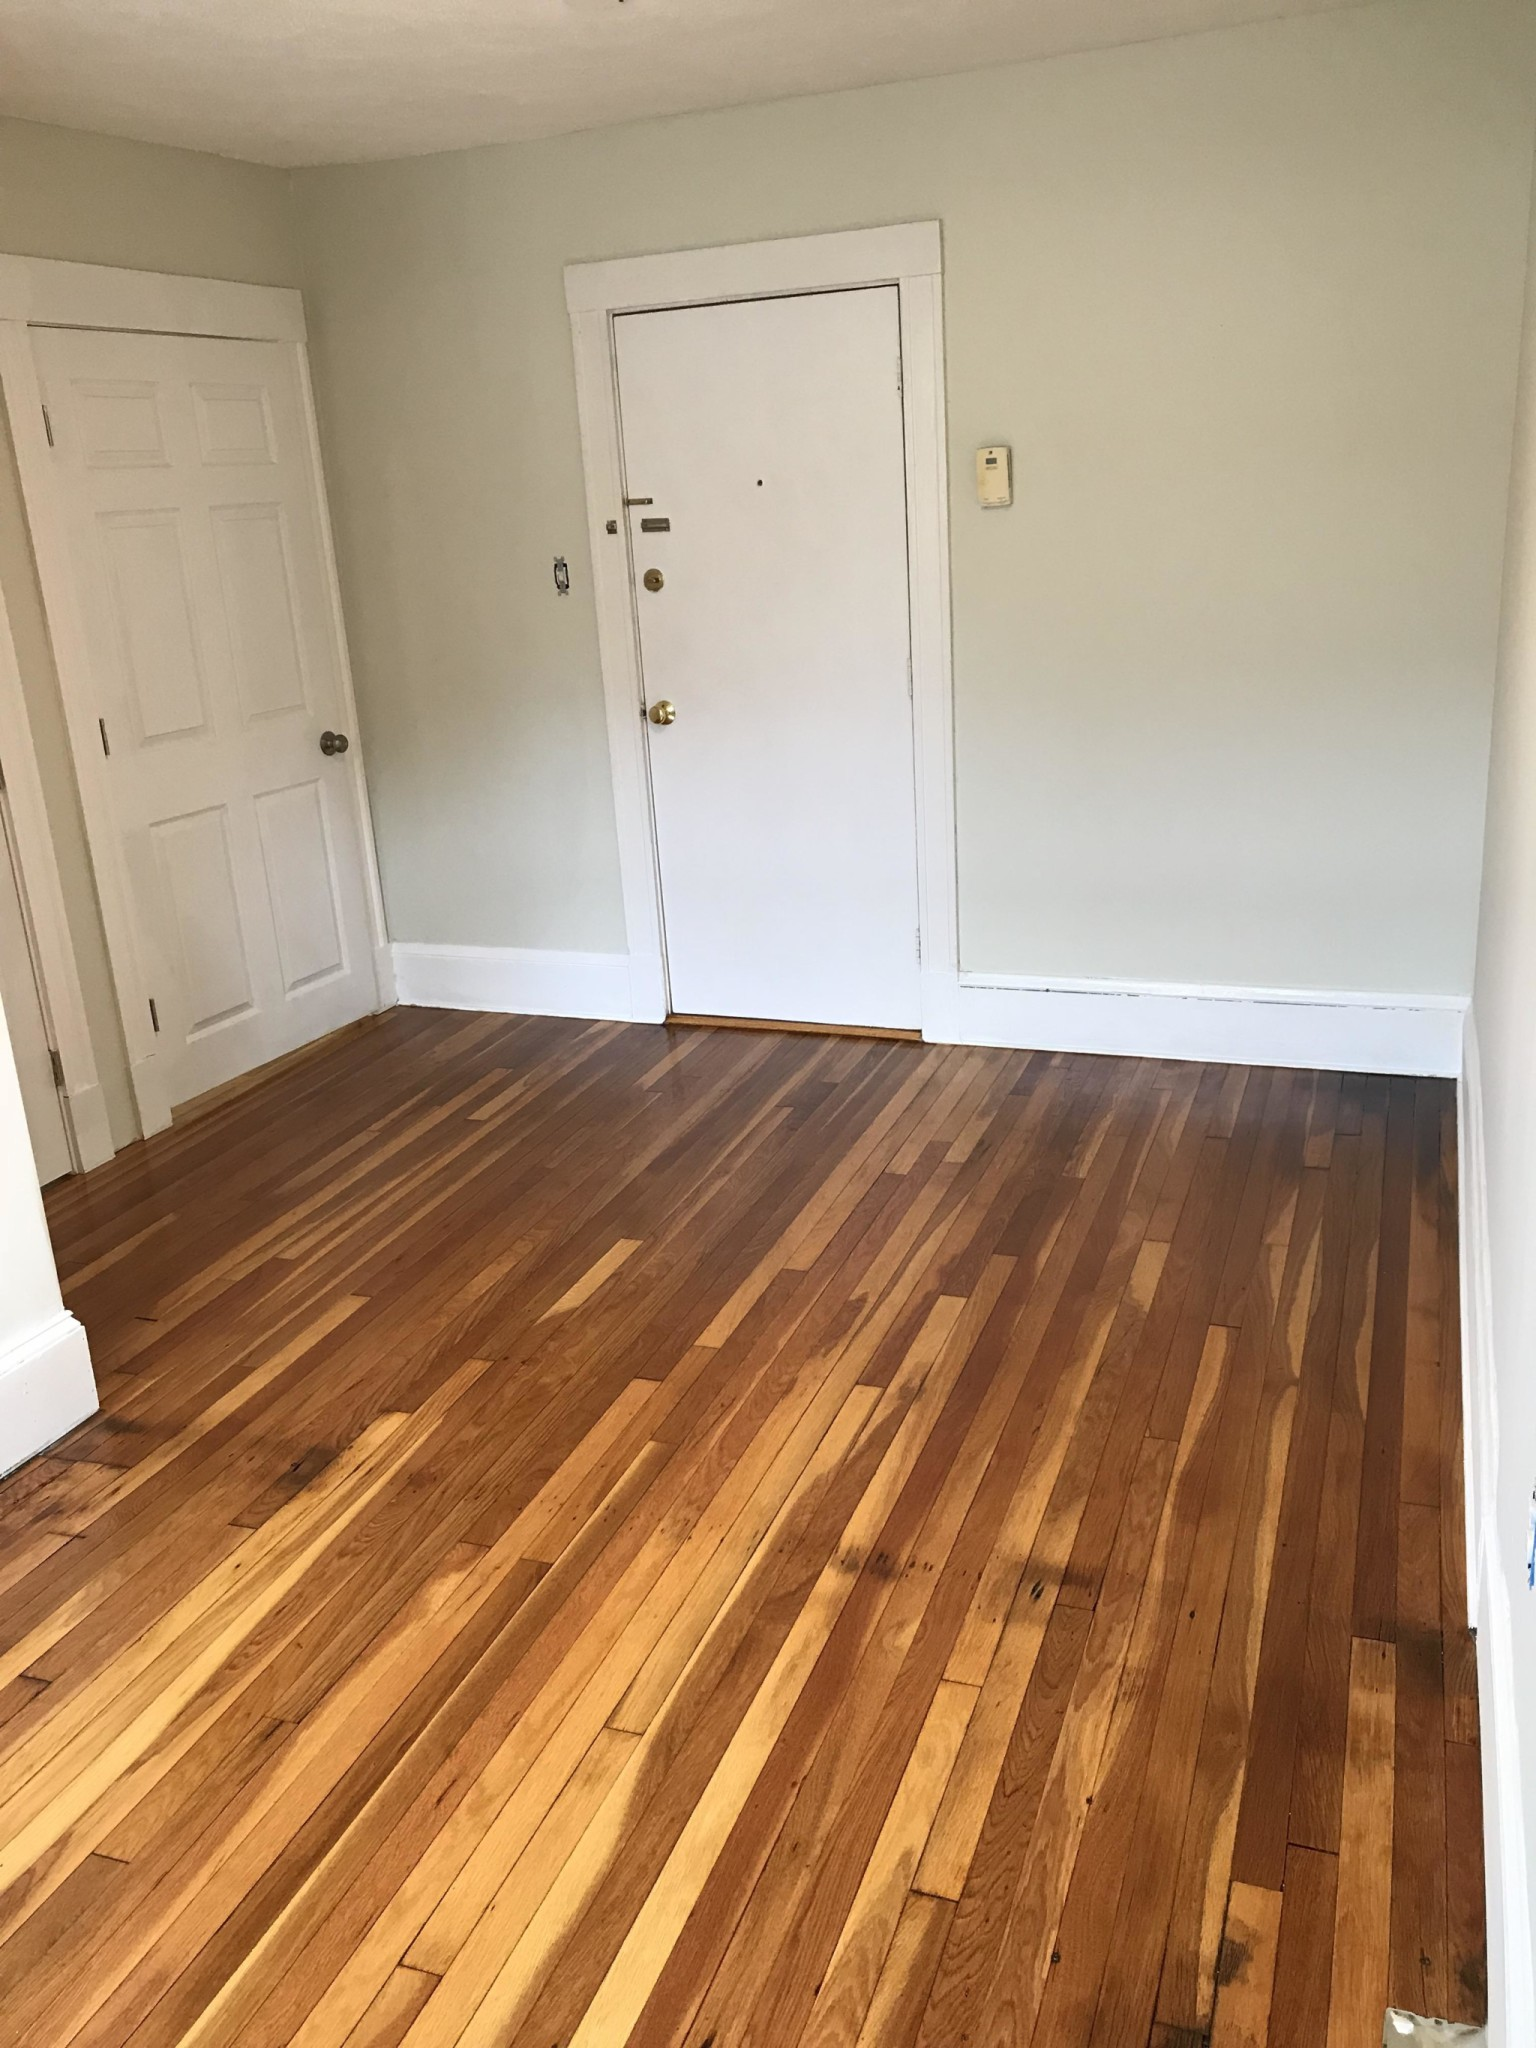 2 Beds, 1 Bath apartment in Somerville, Davis Square for $2,385